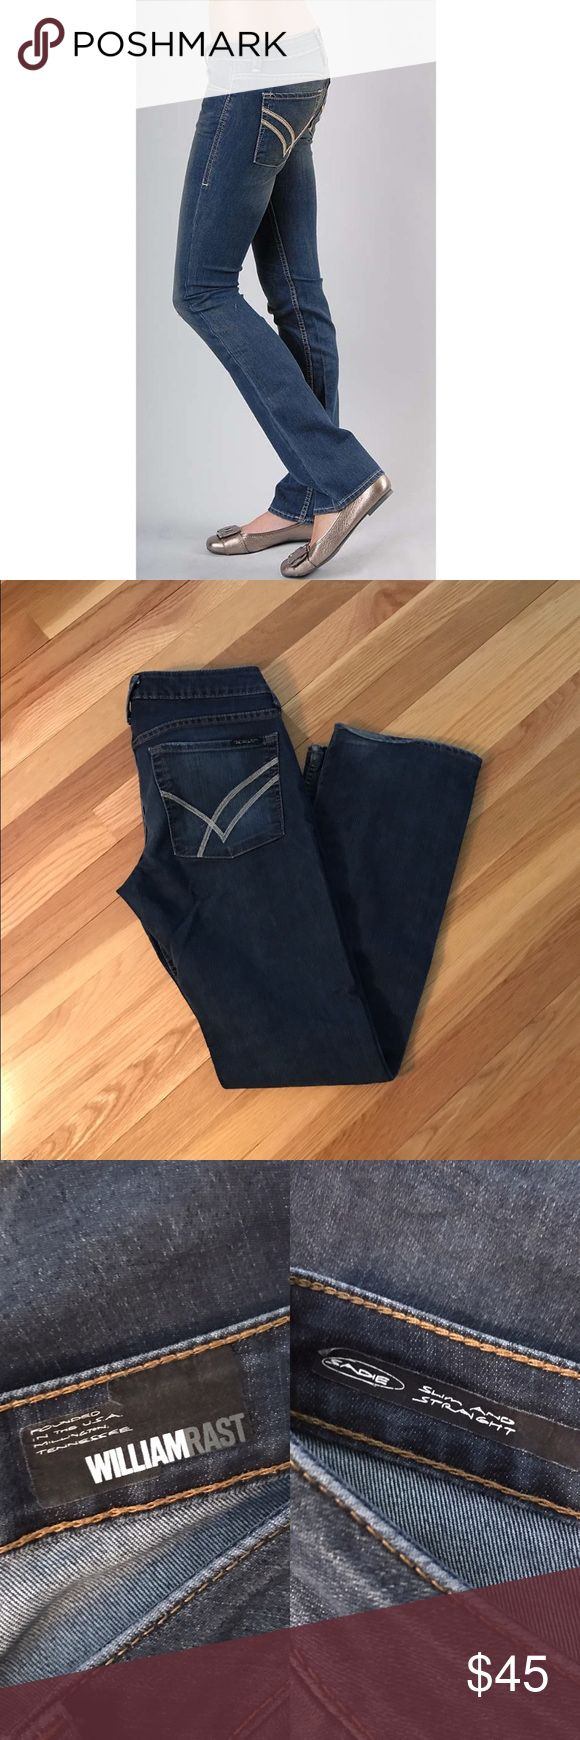 William Rast Sadie Slim and Straight Jeans Super comfortable jeans! Designer is William Rast and style is the Sadie Slim and Straight jean. Purchased at Nordstrom. Pics 1 and 4 are stock photos. Slight wear in the bottom but otherwise new condition. William Rast Jeans